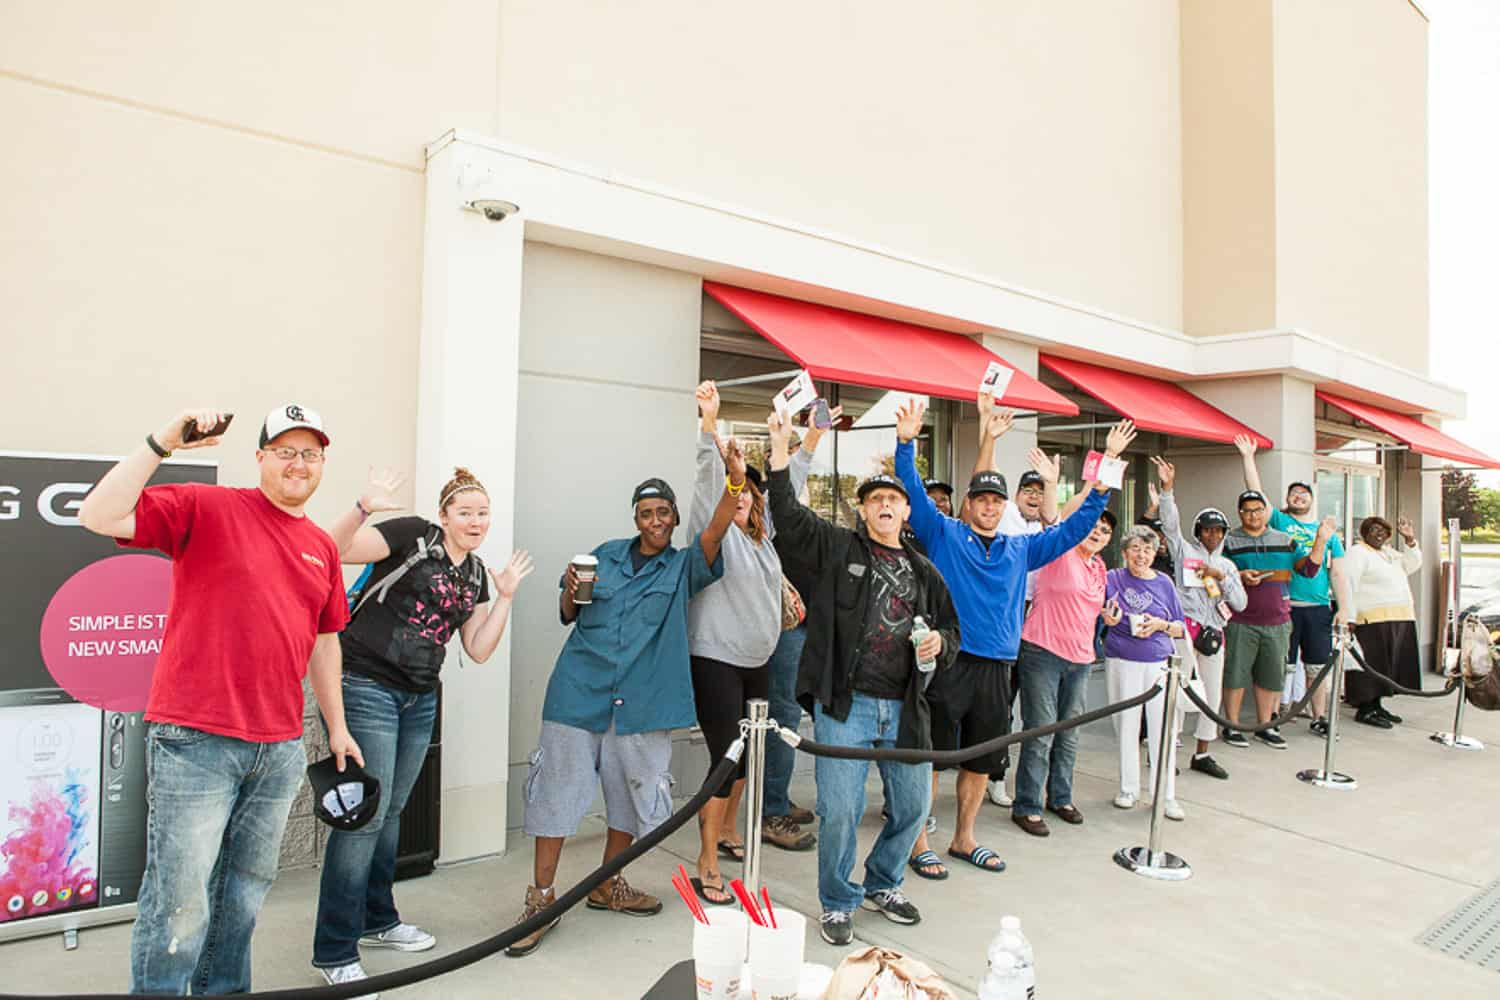 Event photography of people lined up outside of the store.